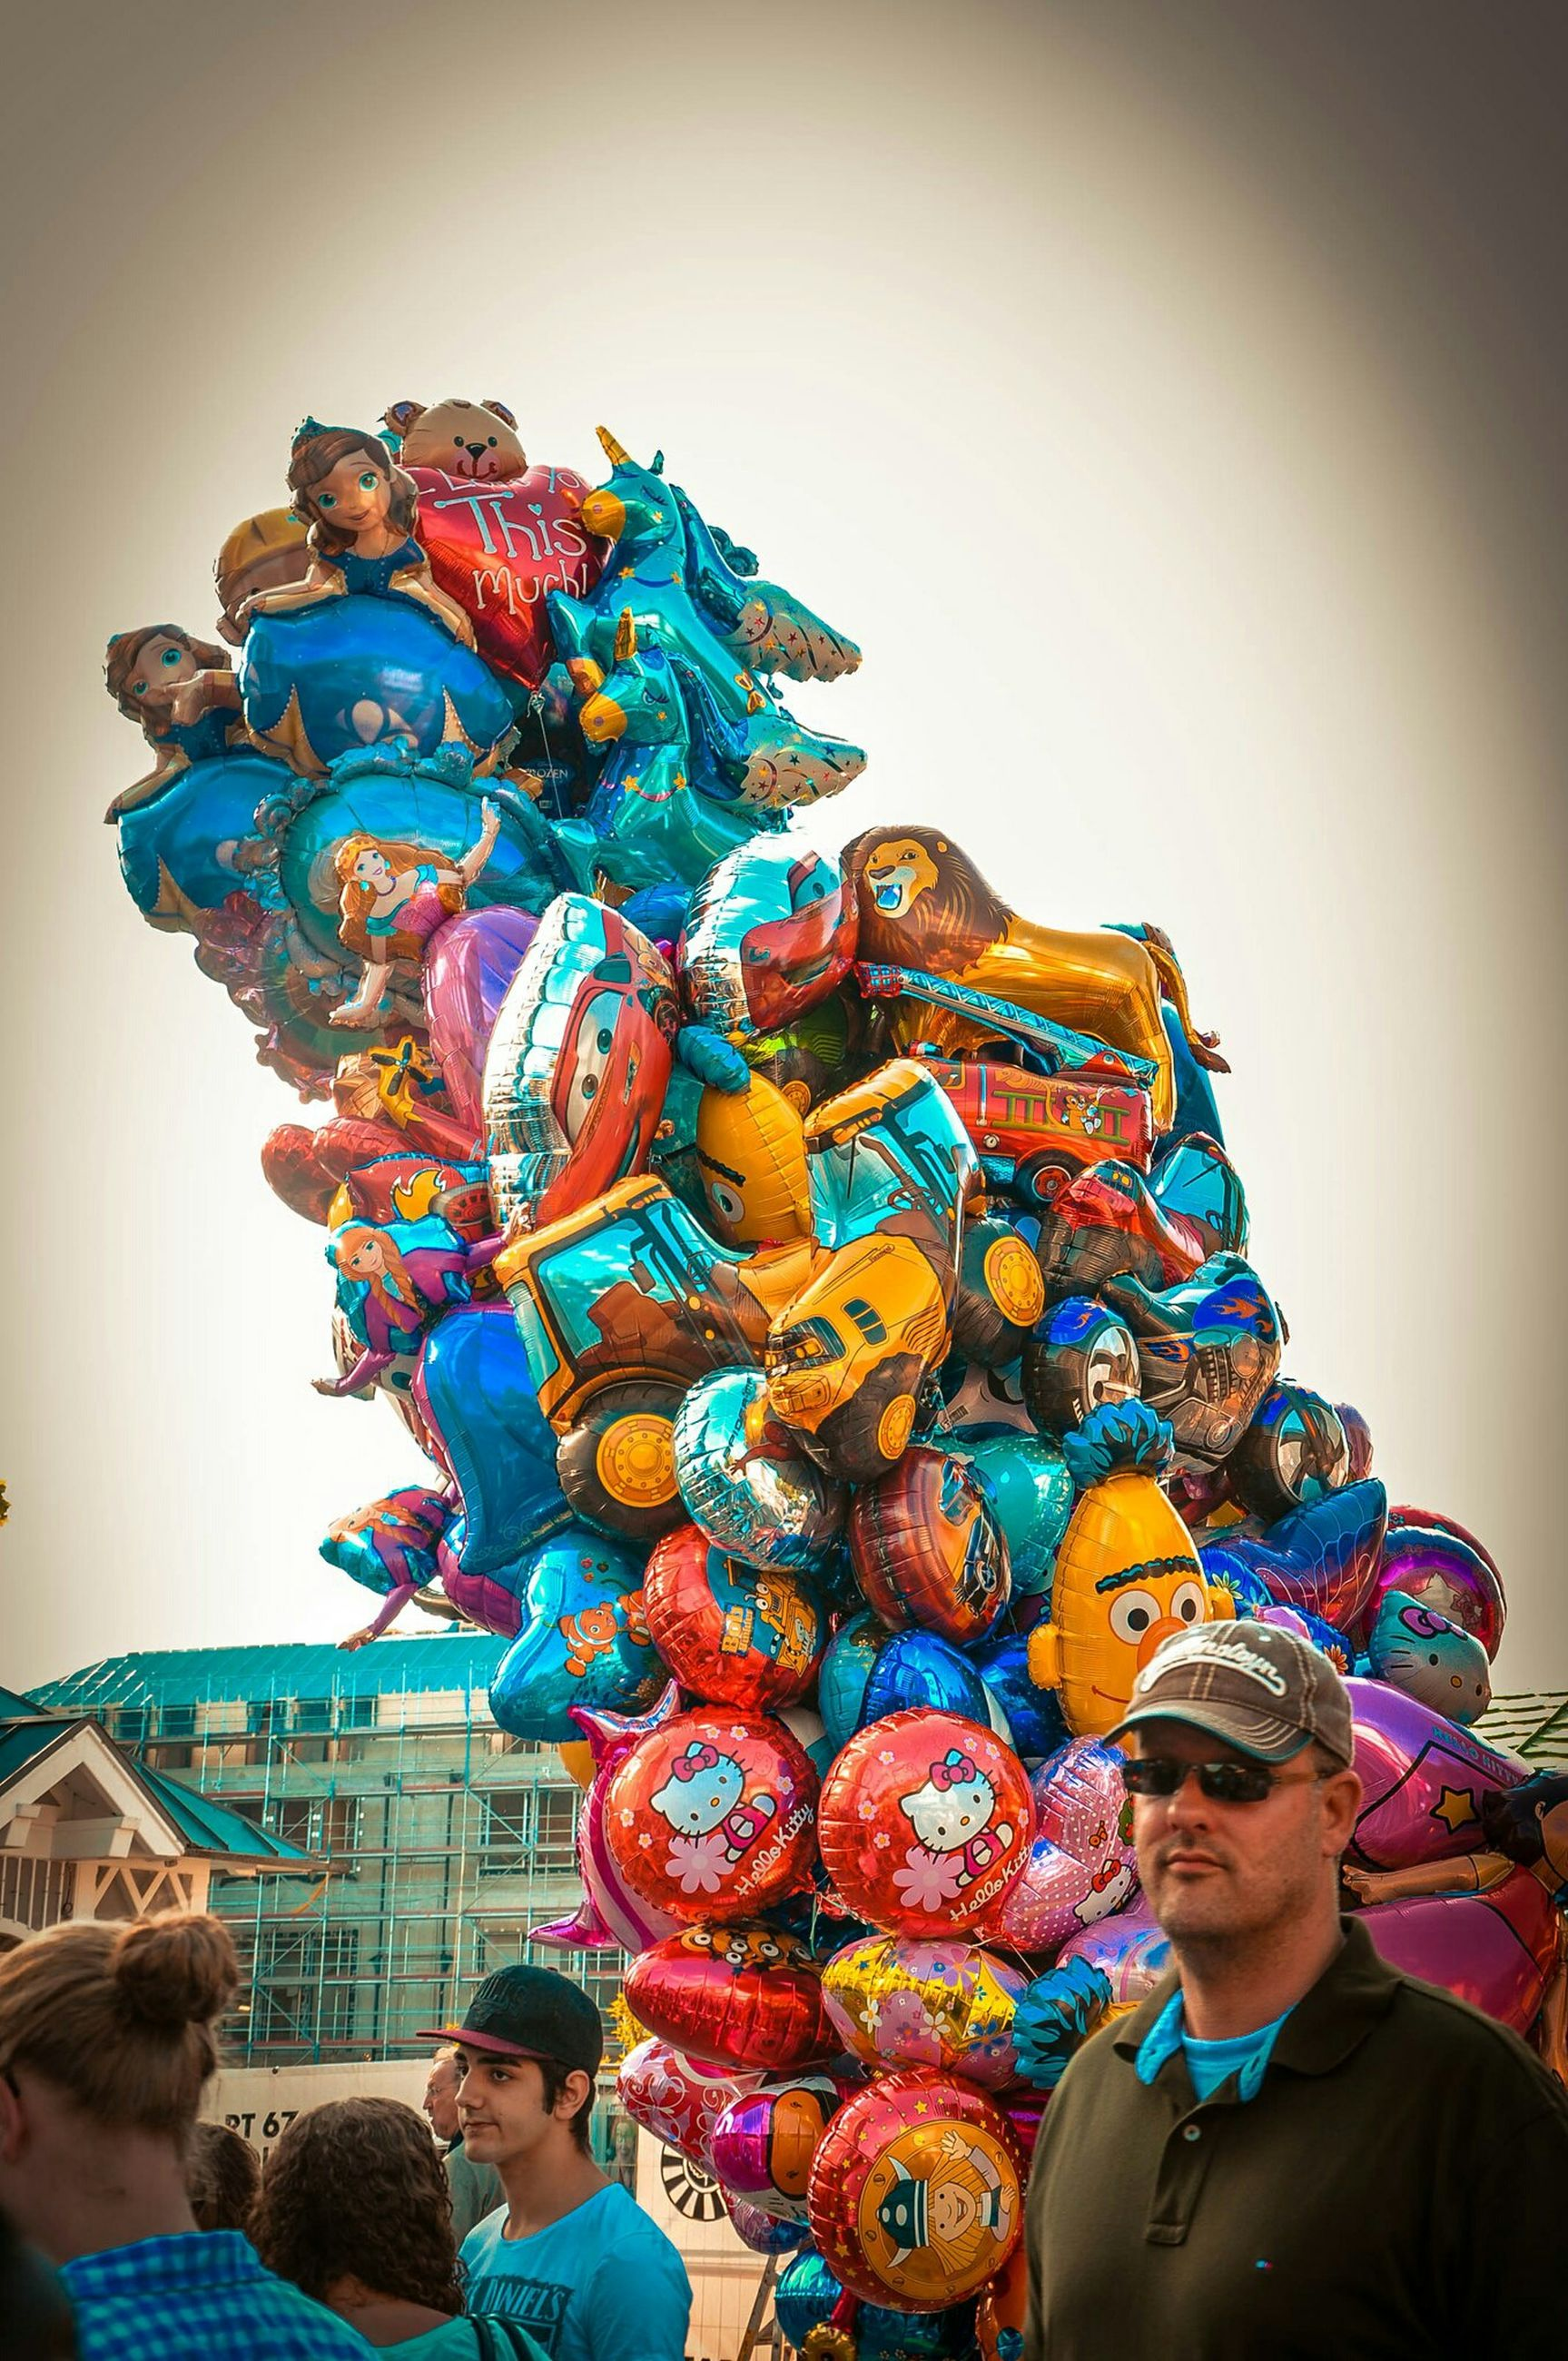 leisure activity, lifestyles, multi colored, childhood, fun, clear sky, copy space, enjoyment, amusement park, arts culture and entertainment, casual clothing, person, happiness, togetherness, amusement park ride, blue, headshot, holding